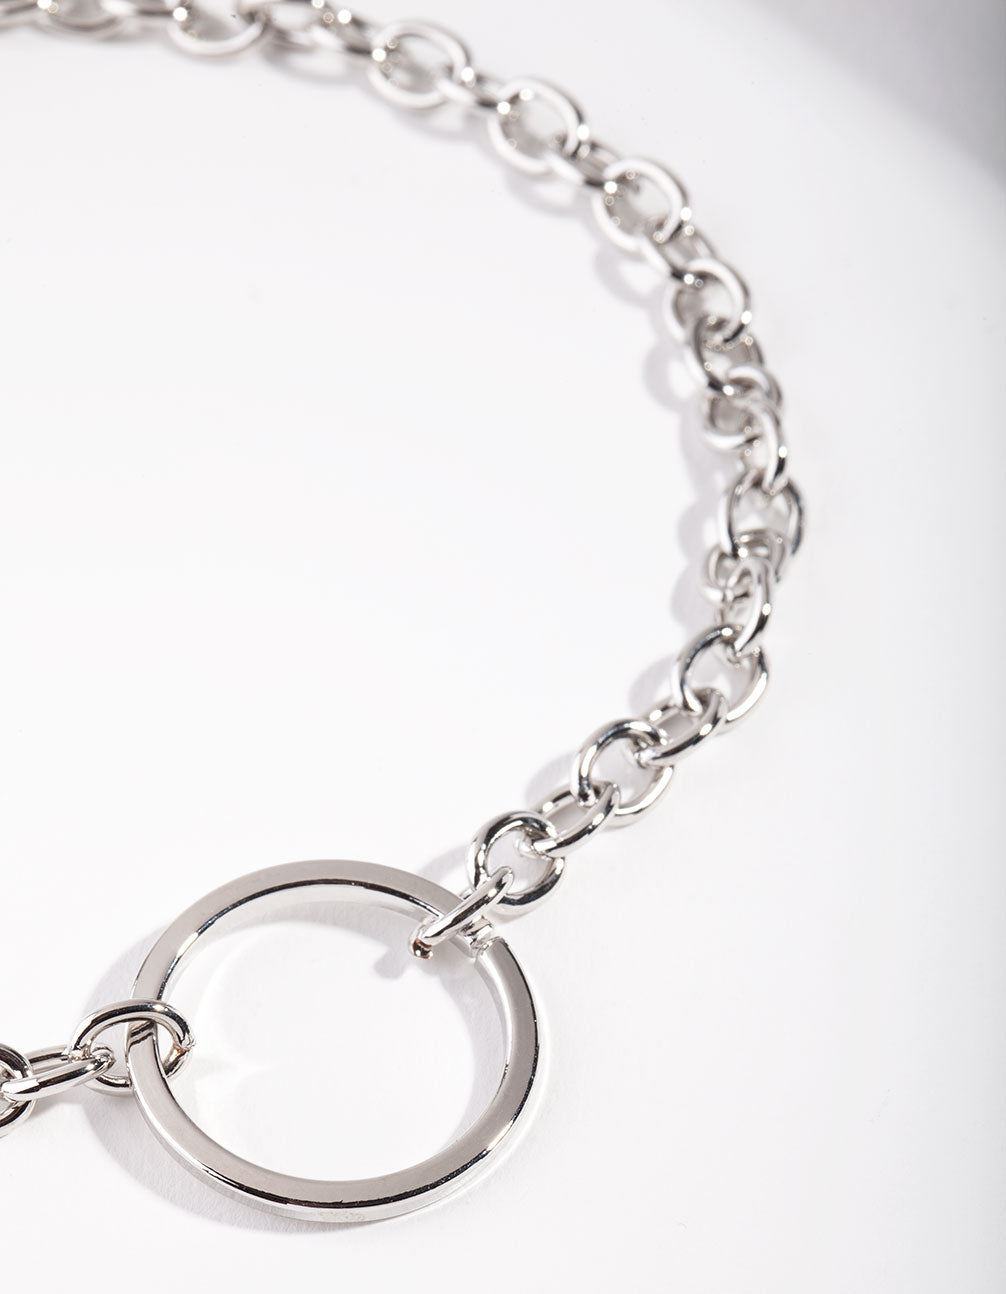 Rhodium Open Circle Choker Necklace